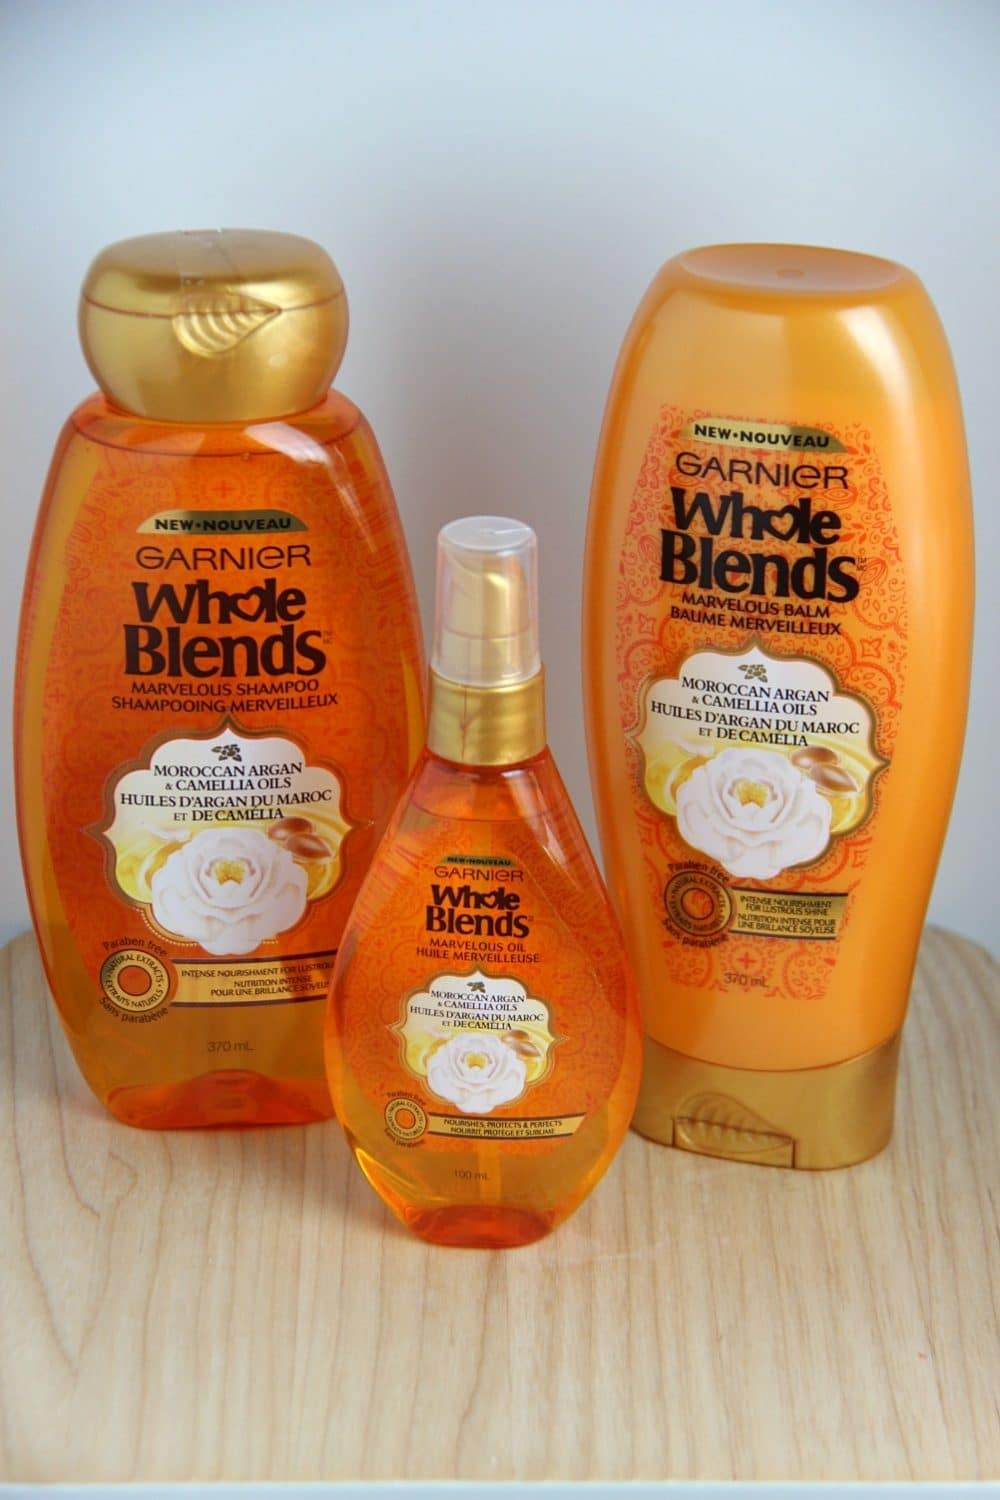 My Three Step Hair Care Ritual With Garnier Whole Blends